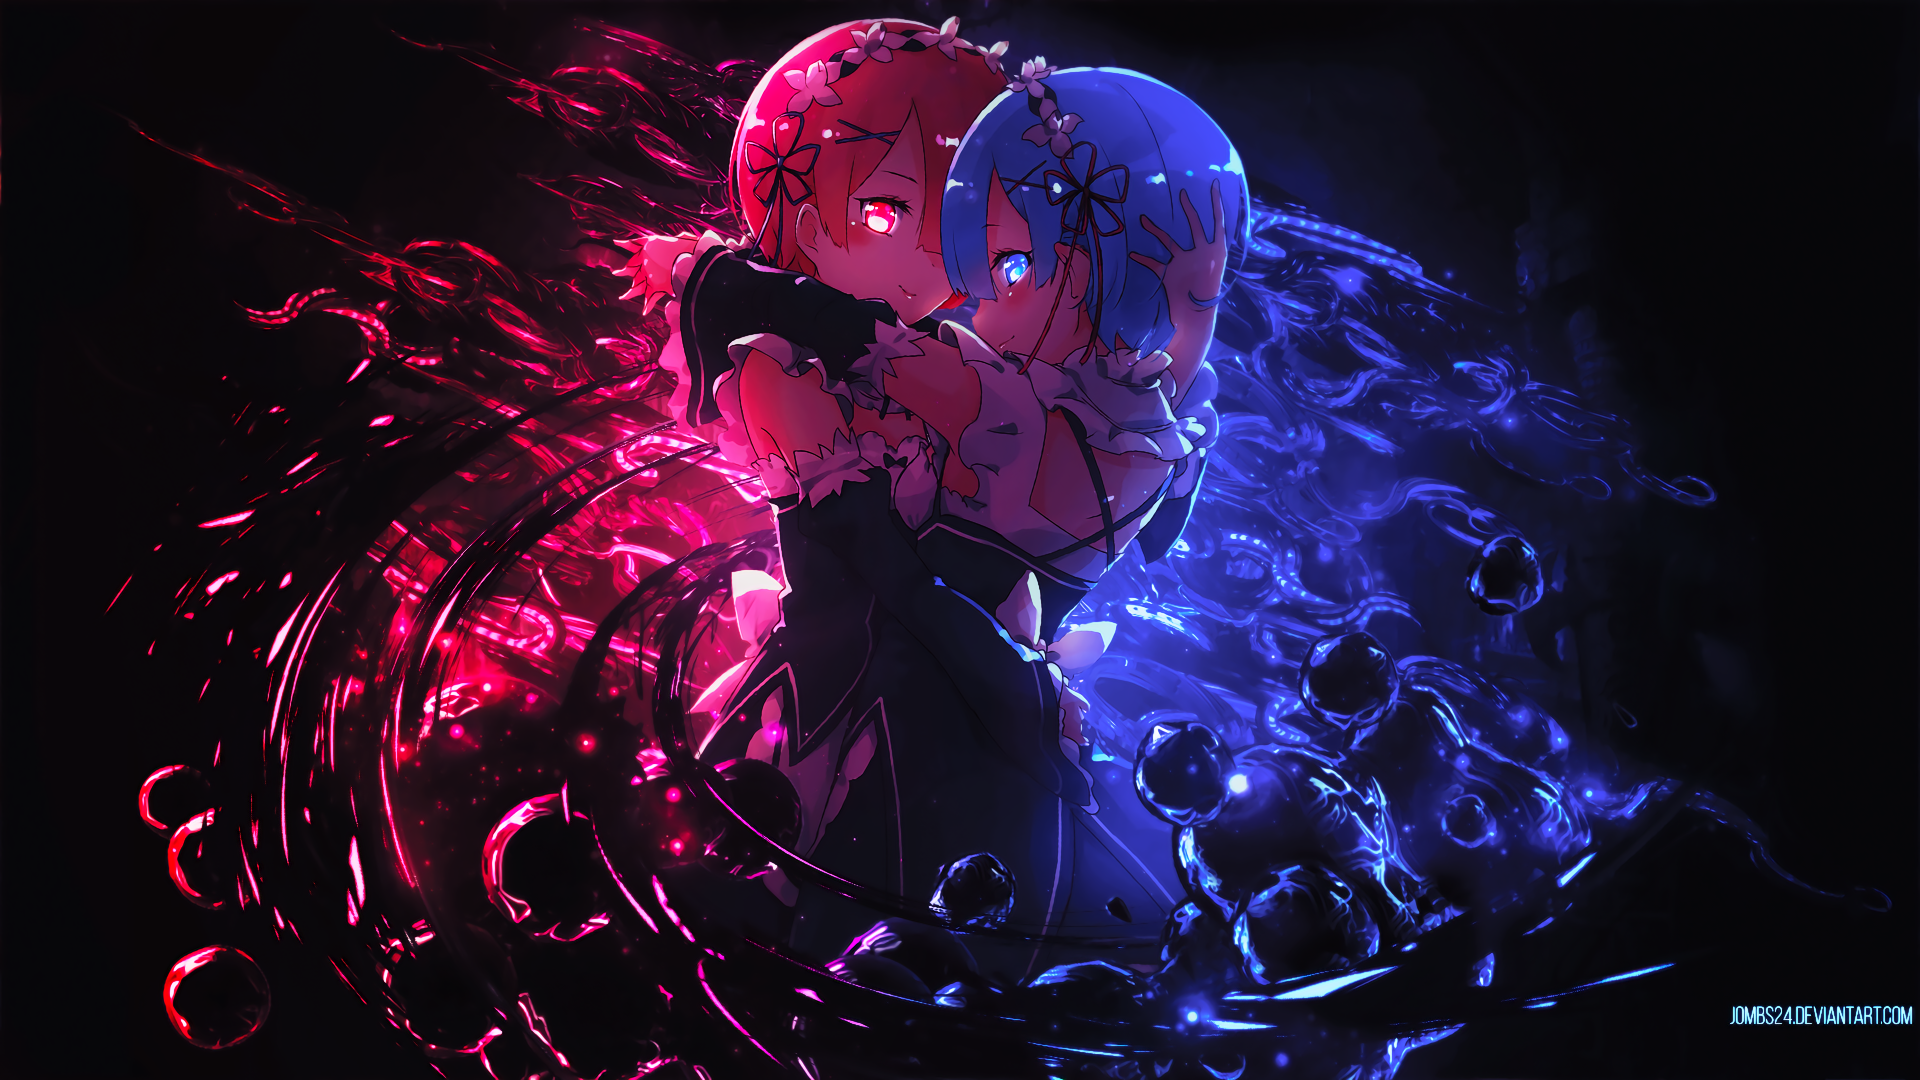 Anime Re Zero Starting Life In Another World Rem Re Zero Ram Re Zero Re Zero Wallpaper Anime Wallpaper 1920x1080 Anime Background Anime Wallpaper